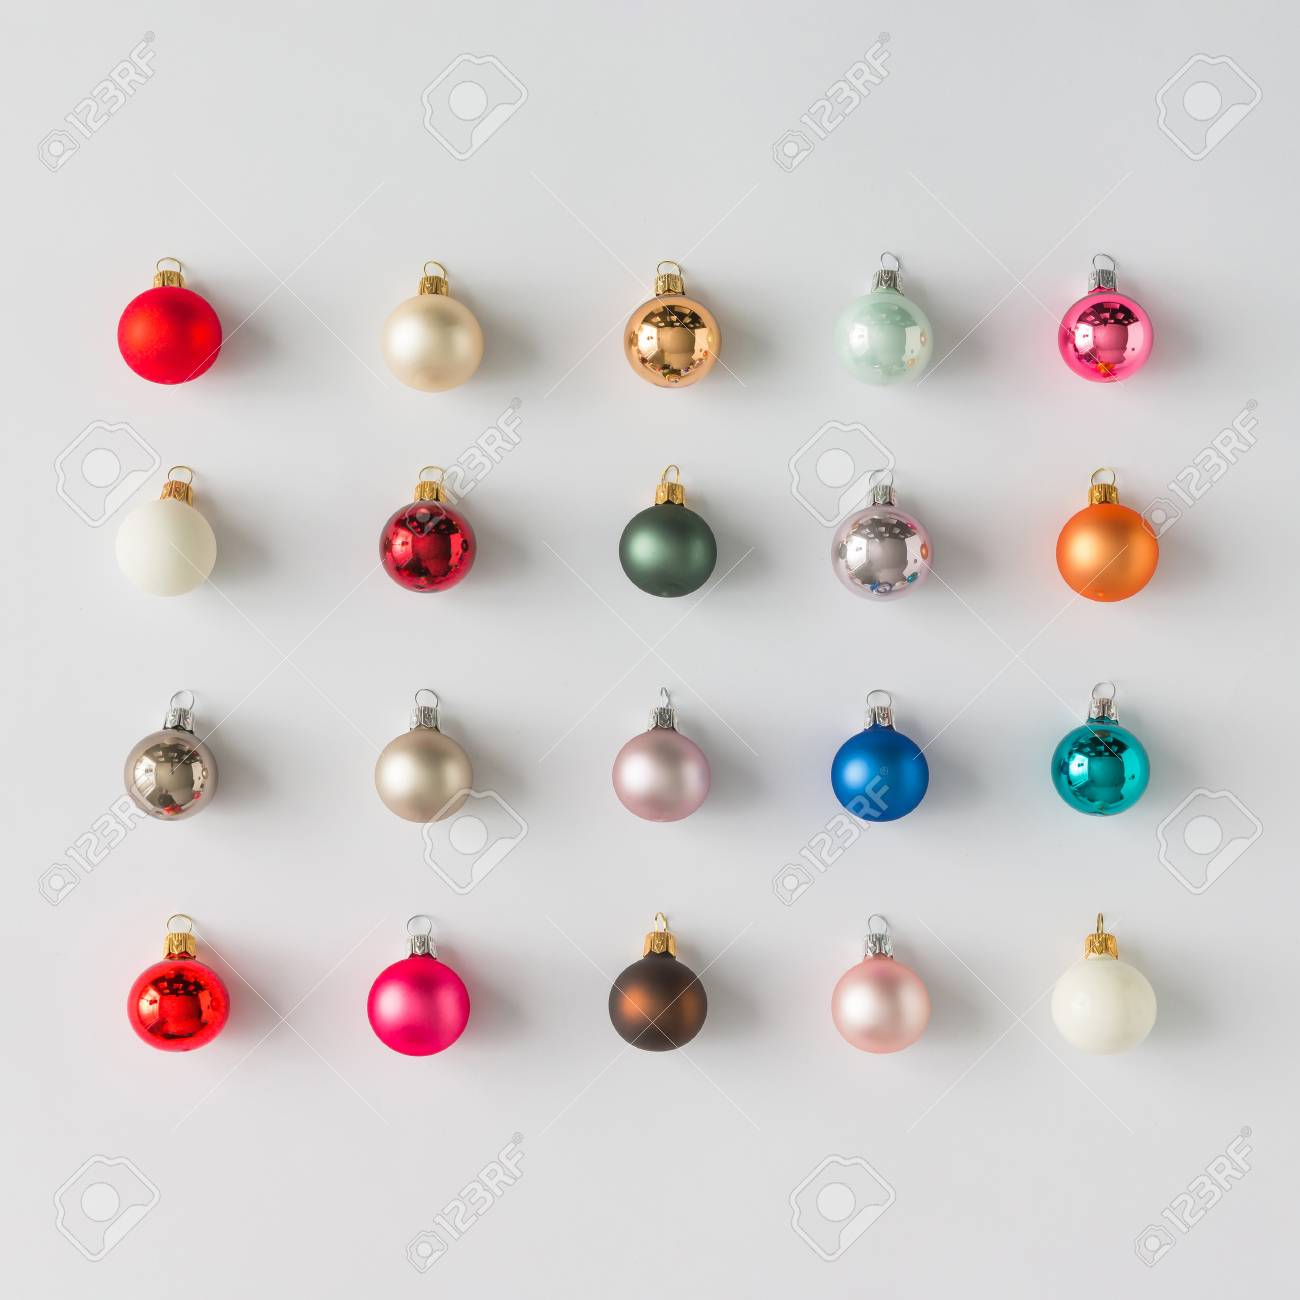 Colorful Christmas Baubles Decoration On Bright Background Flat Lay Holiday Concept Stock Photo